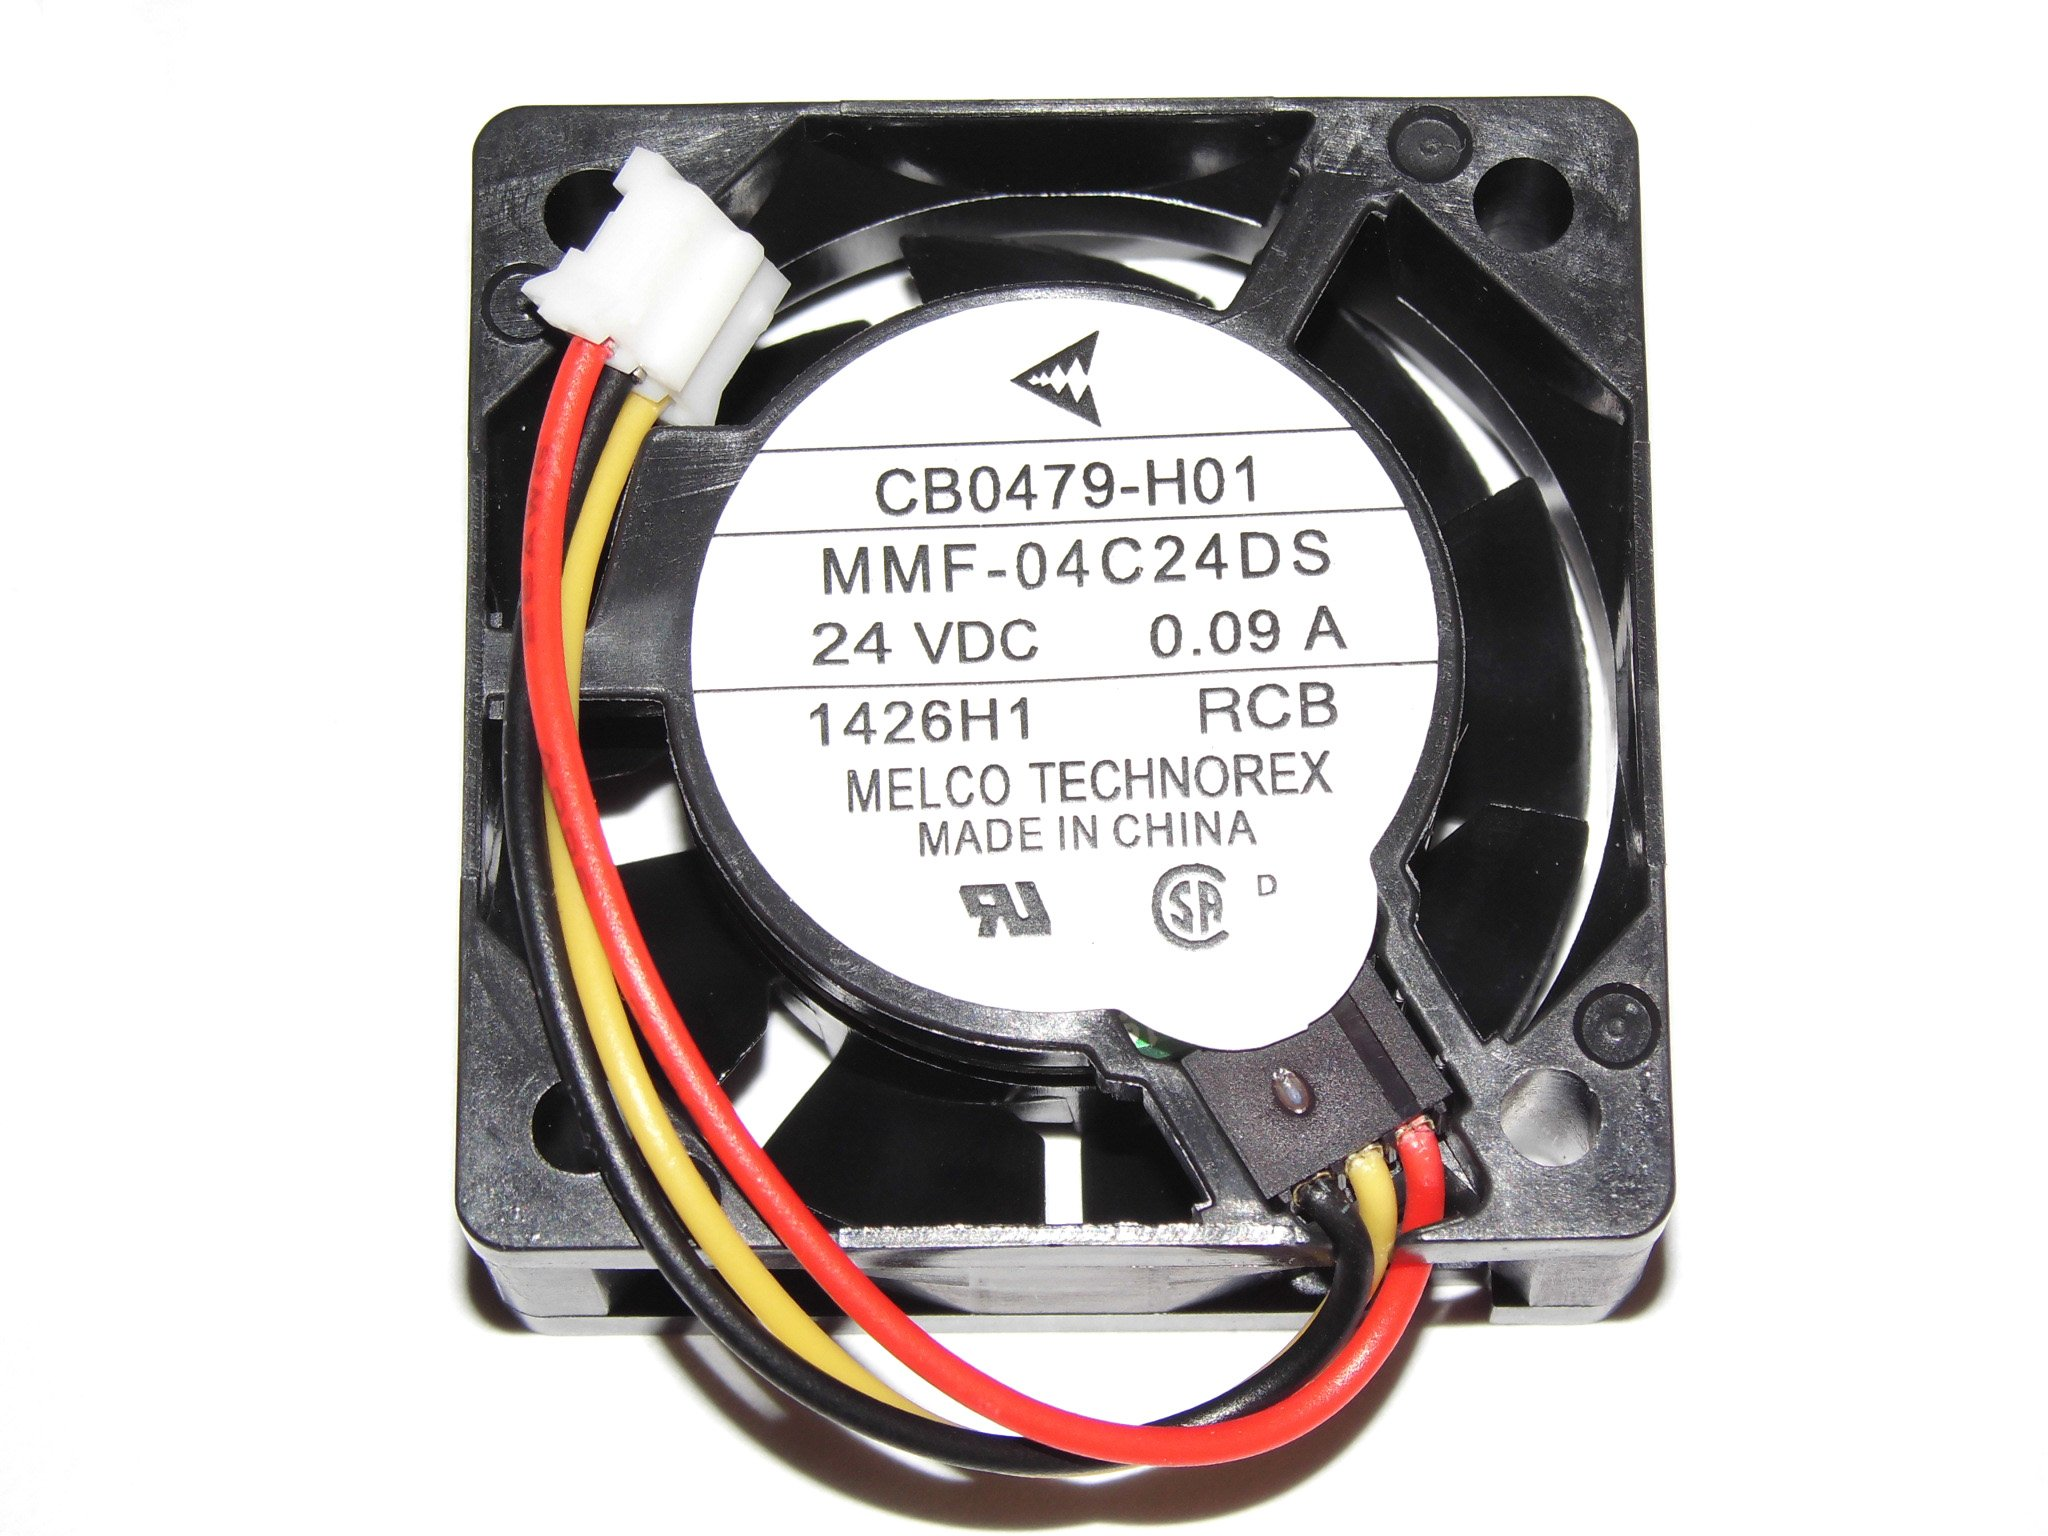 Melco 40MM MMF-04C24DS RCB 24V 0.09A CB0479-H01 3Wire Cooling Fan